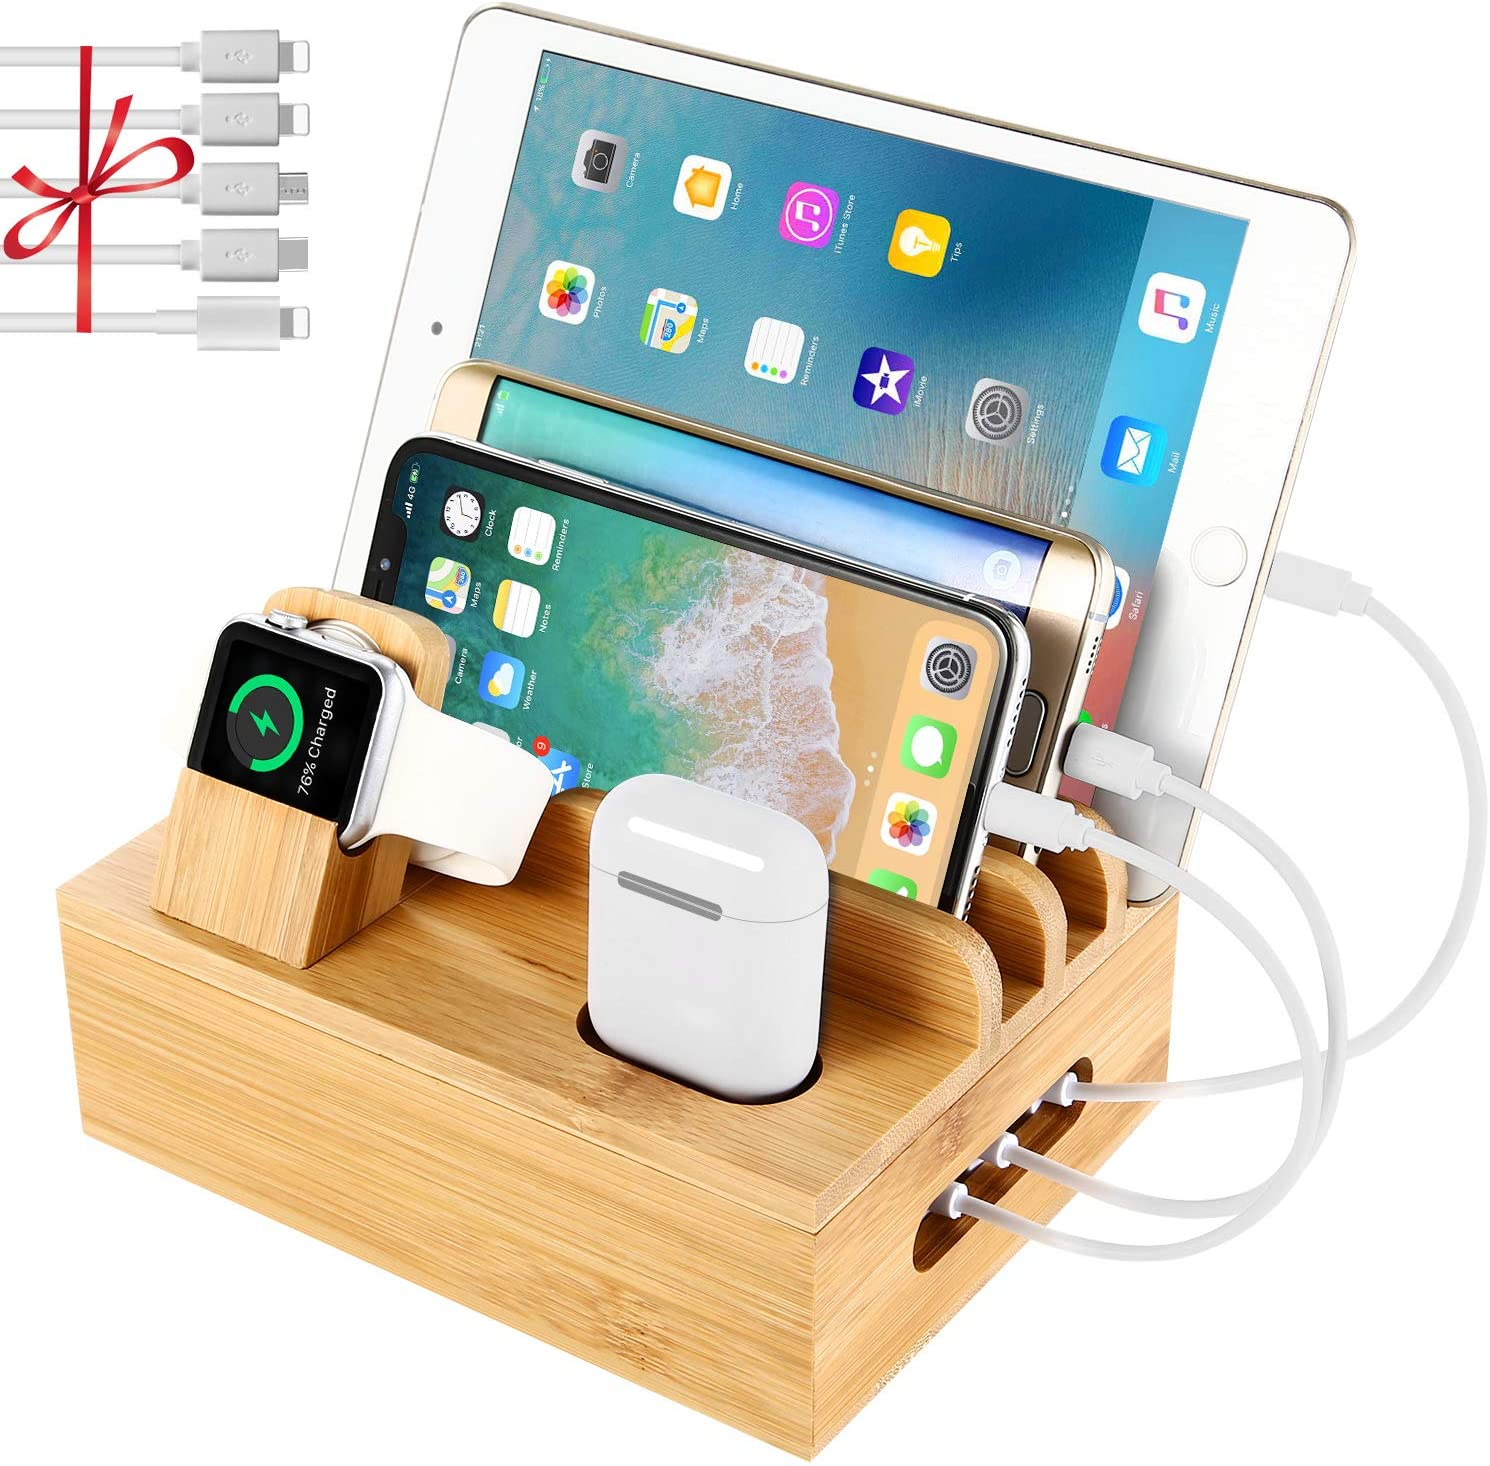 Desk charger organizer with AirPods, an apple watch, phones and a tablet.